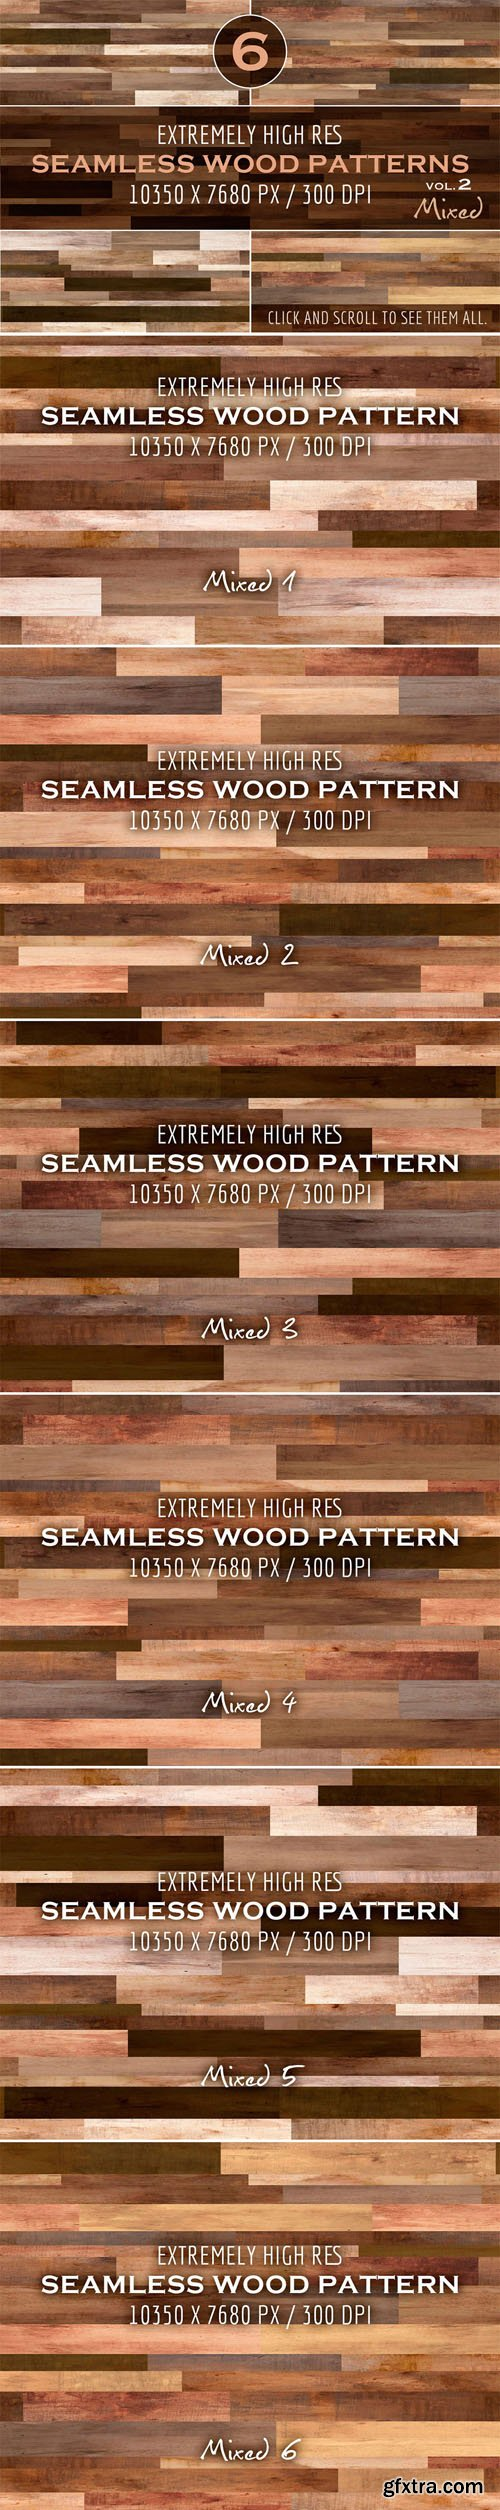 Extremely HR seamless wood patterns - CM 288147